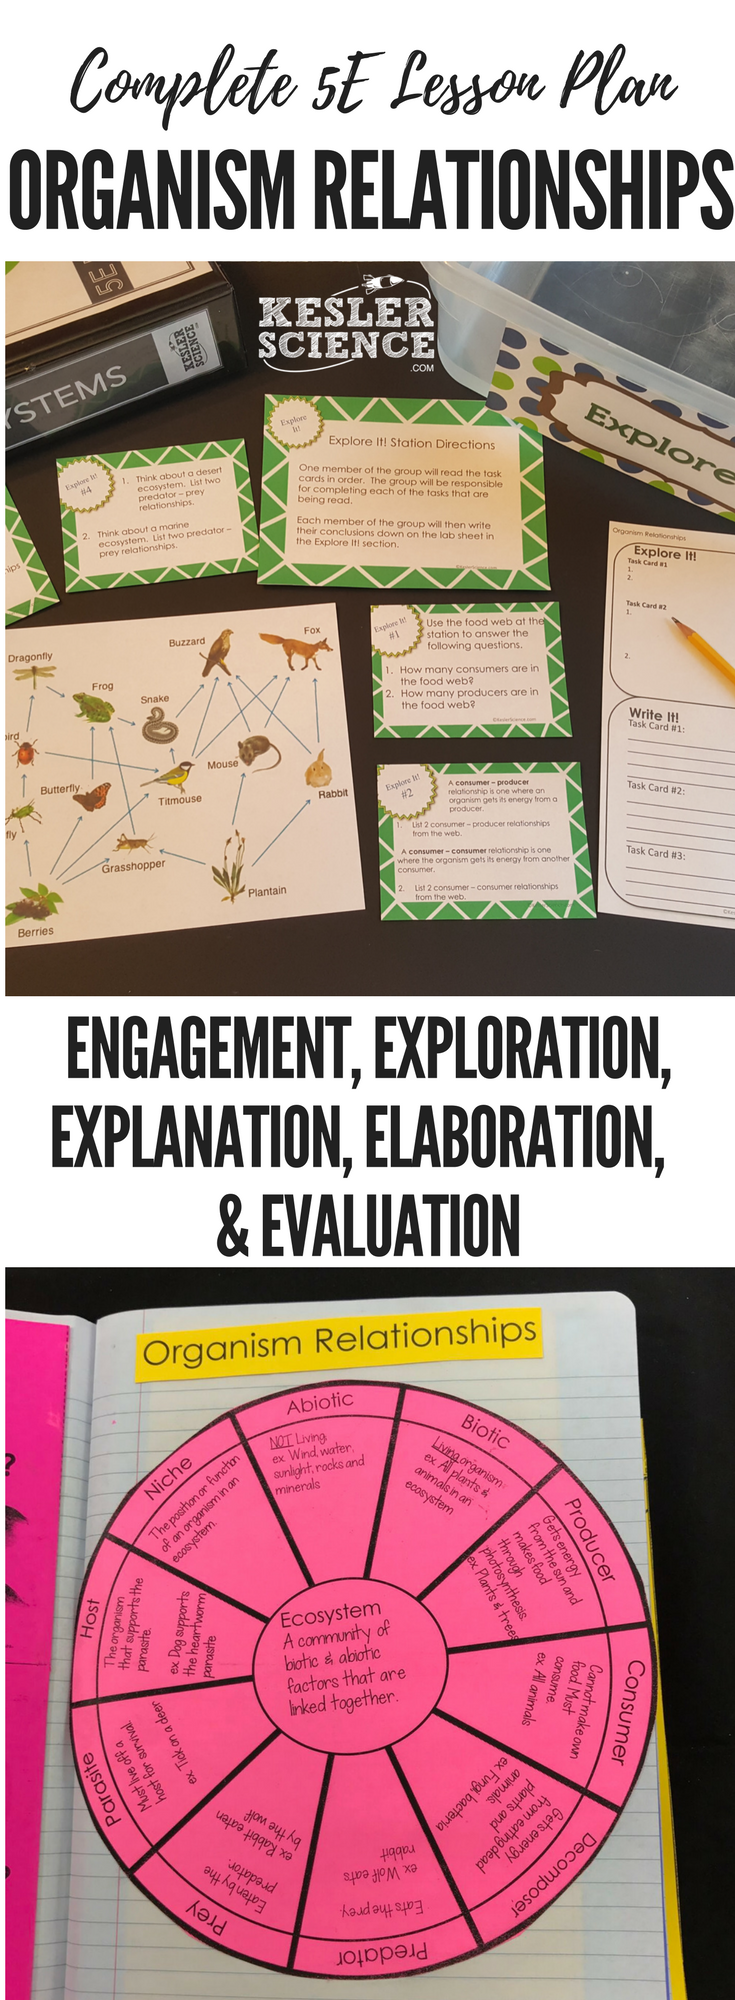 Organism Relationships 5E Lesson Plan ready to print and ...